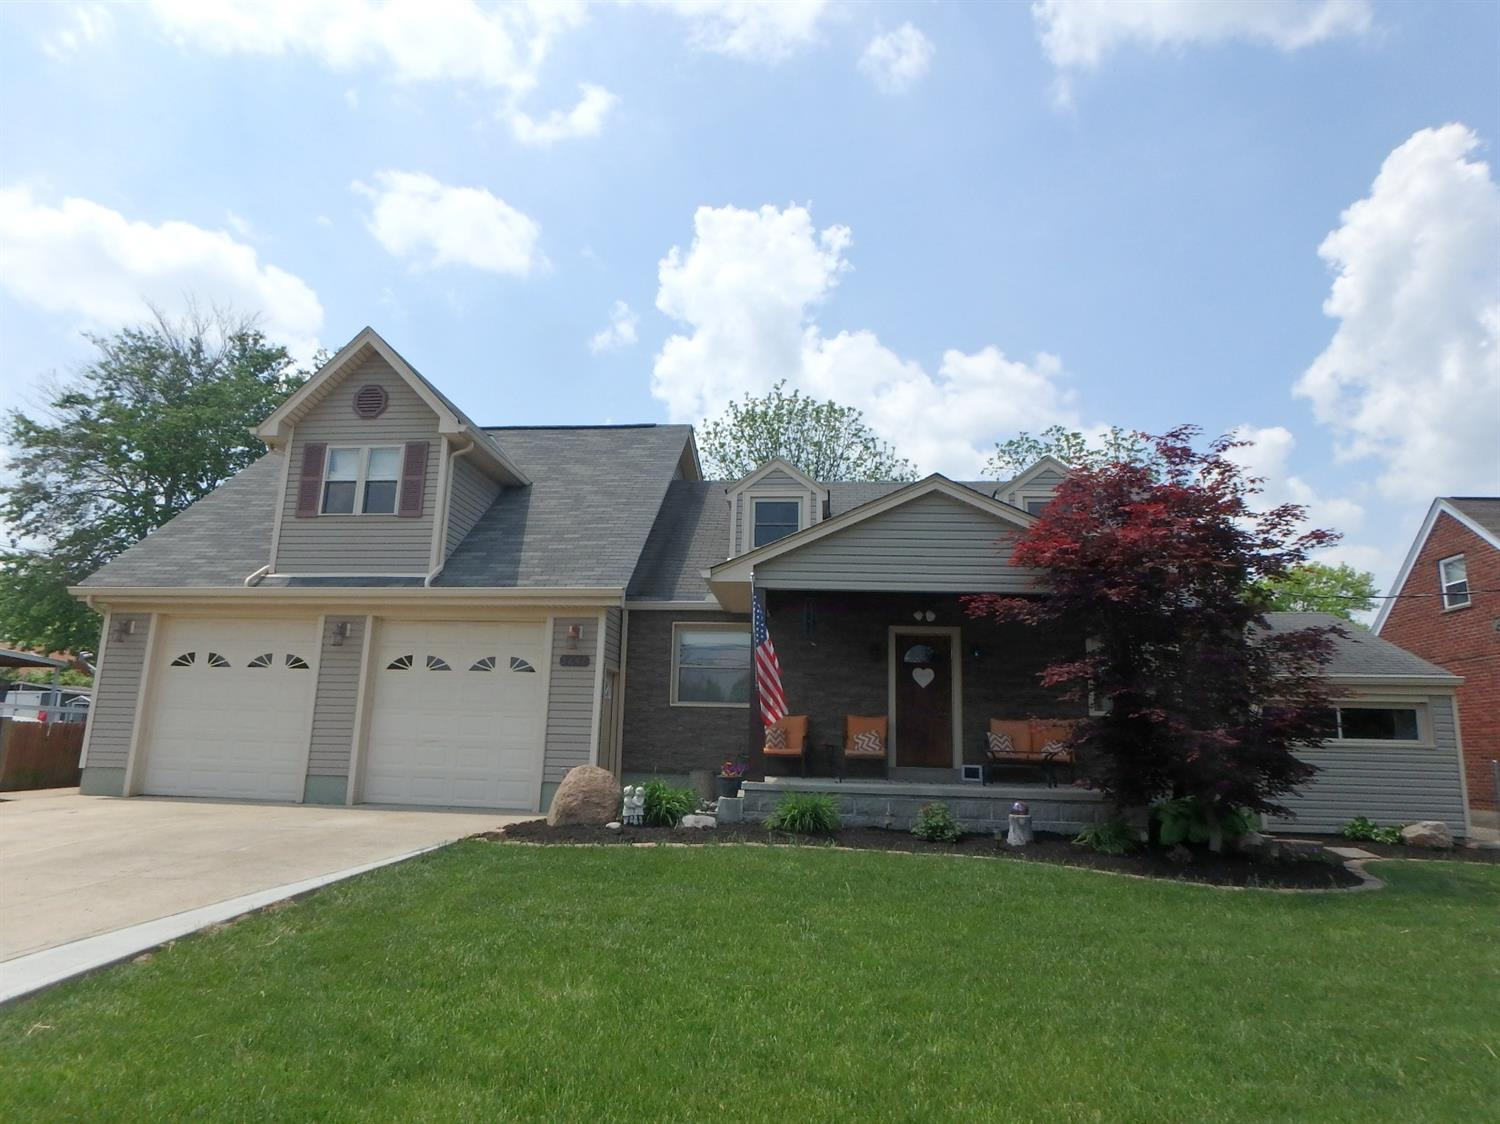 3647 Eyrich Rd Green Twp. - Hamilton Co., OH